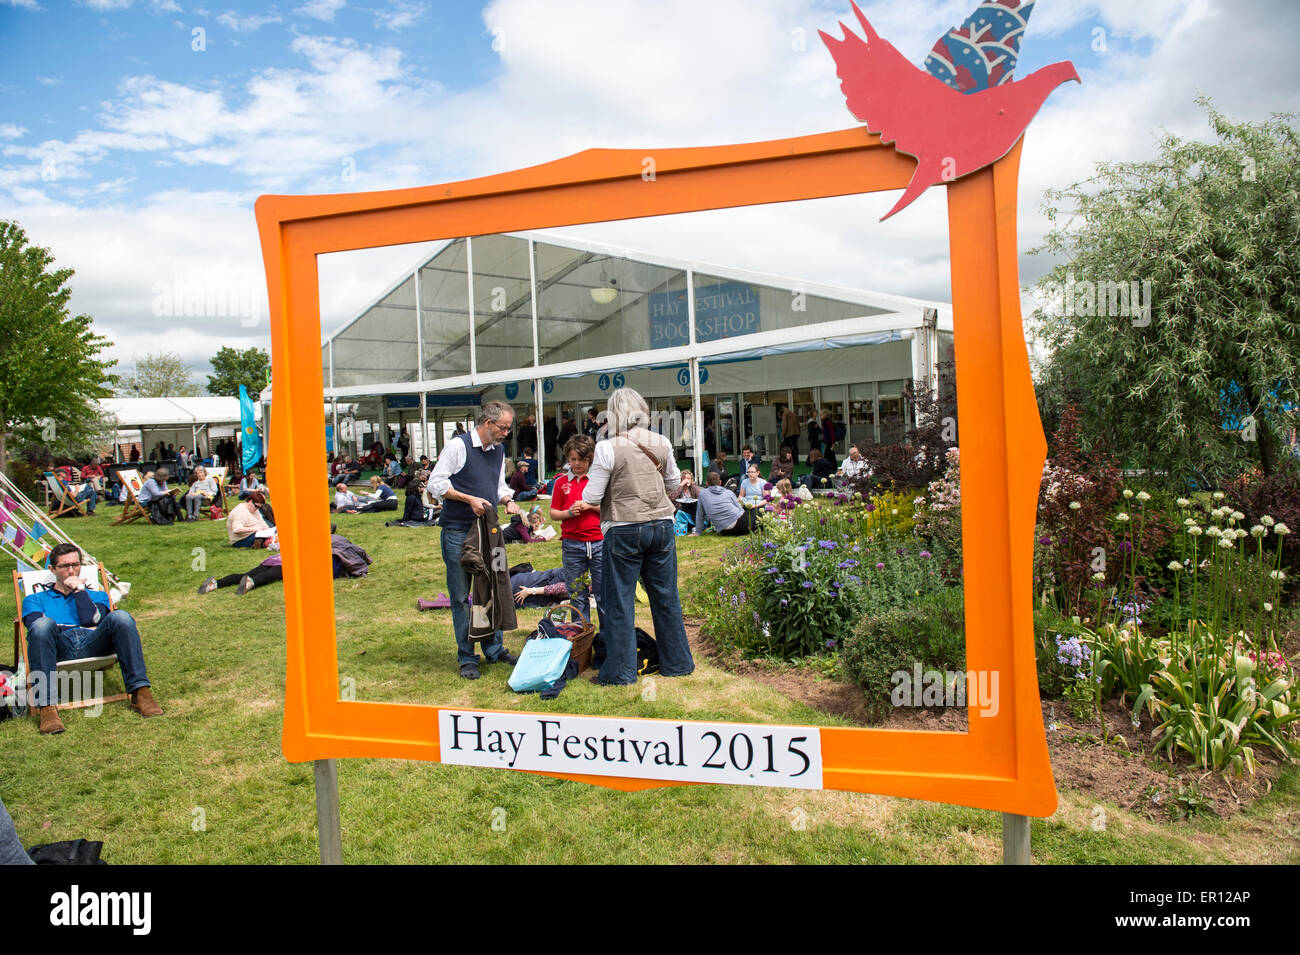 Hay-on-Wye, Wales, UK. 24th May, 2015. Festival goers at the Hay Festival on May 24, 2015 in Hay-on-Wye, Wales. - Stock Image